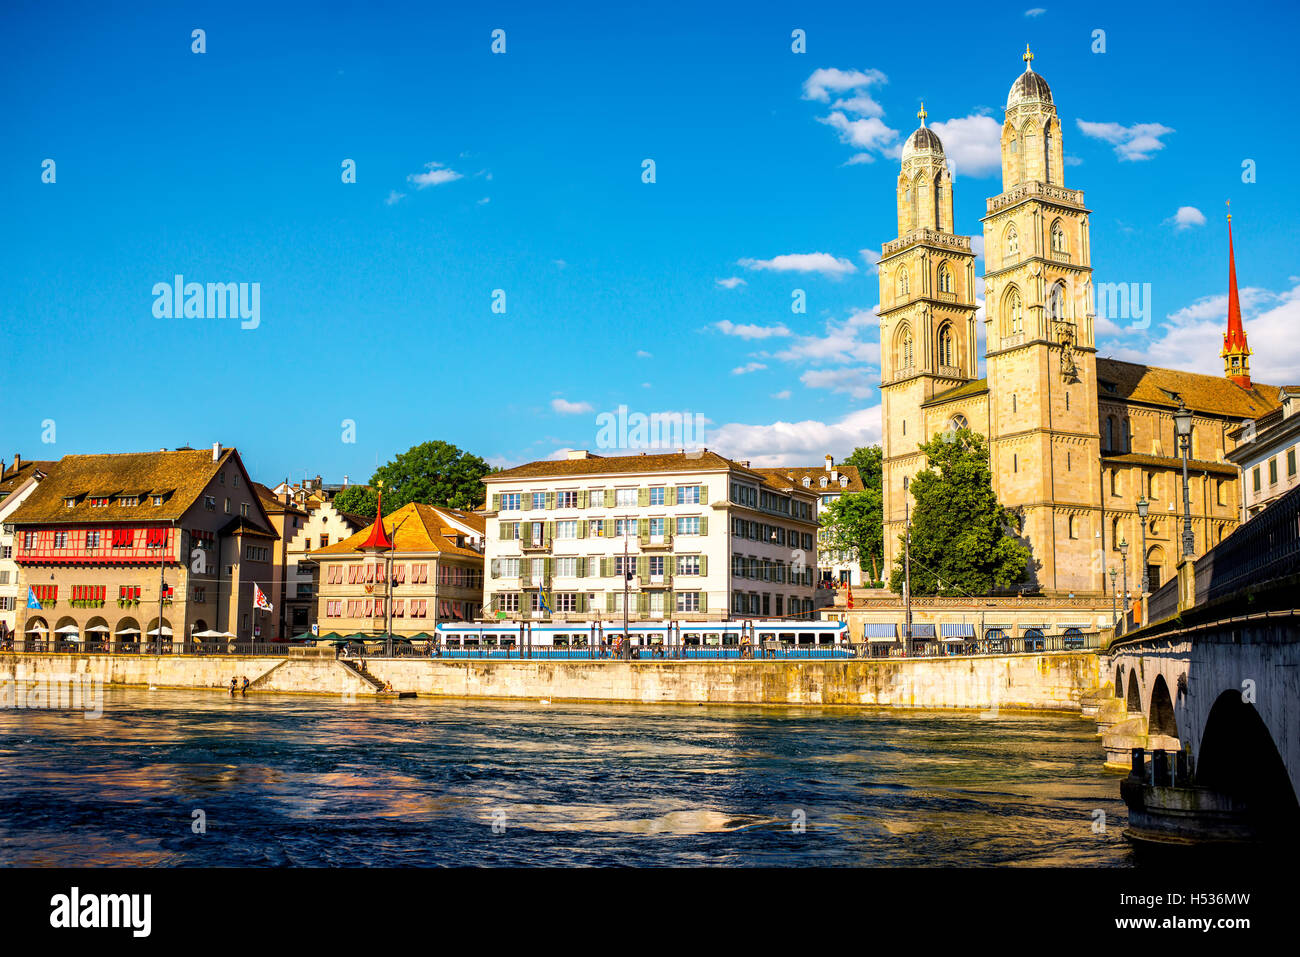 Cityscape view in Zurich city - Stock Image